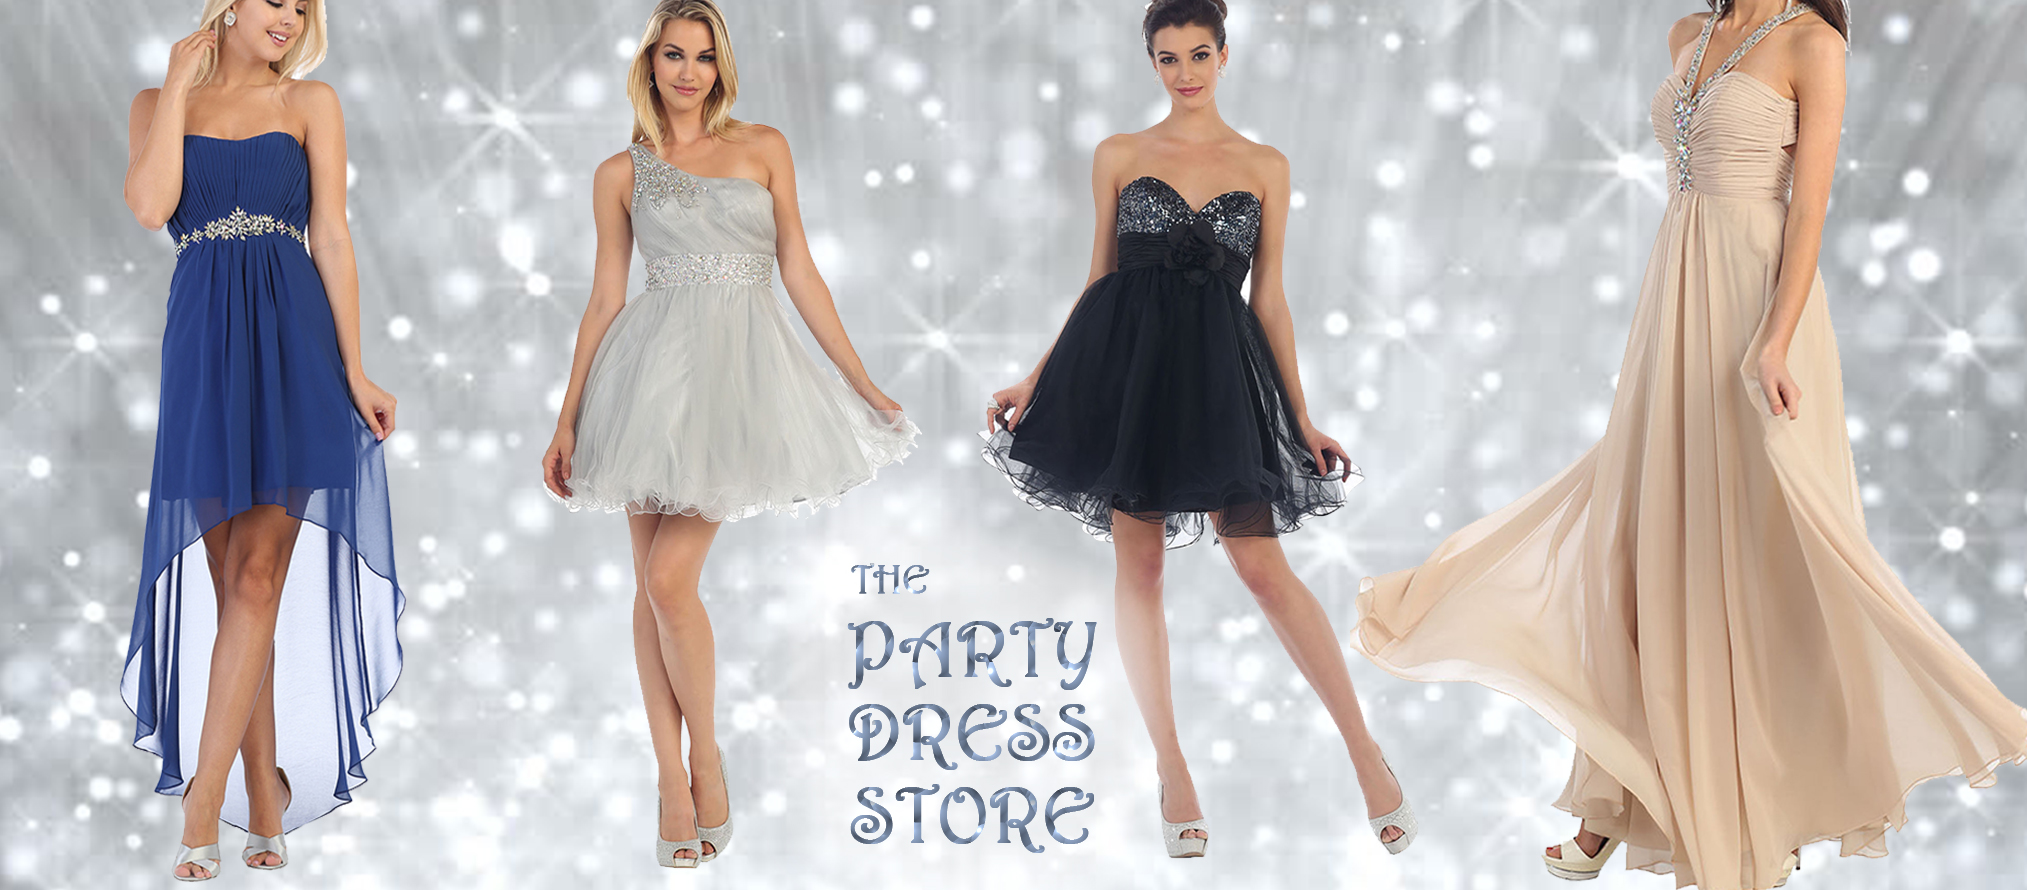 The Party Dress Store